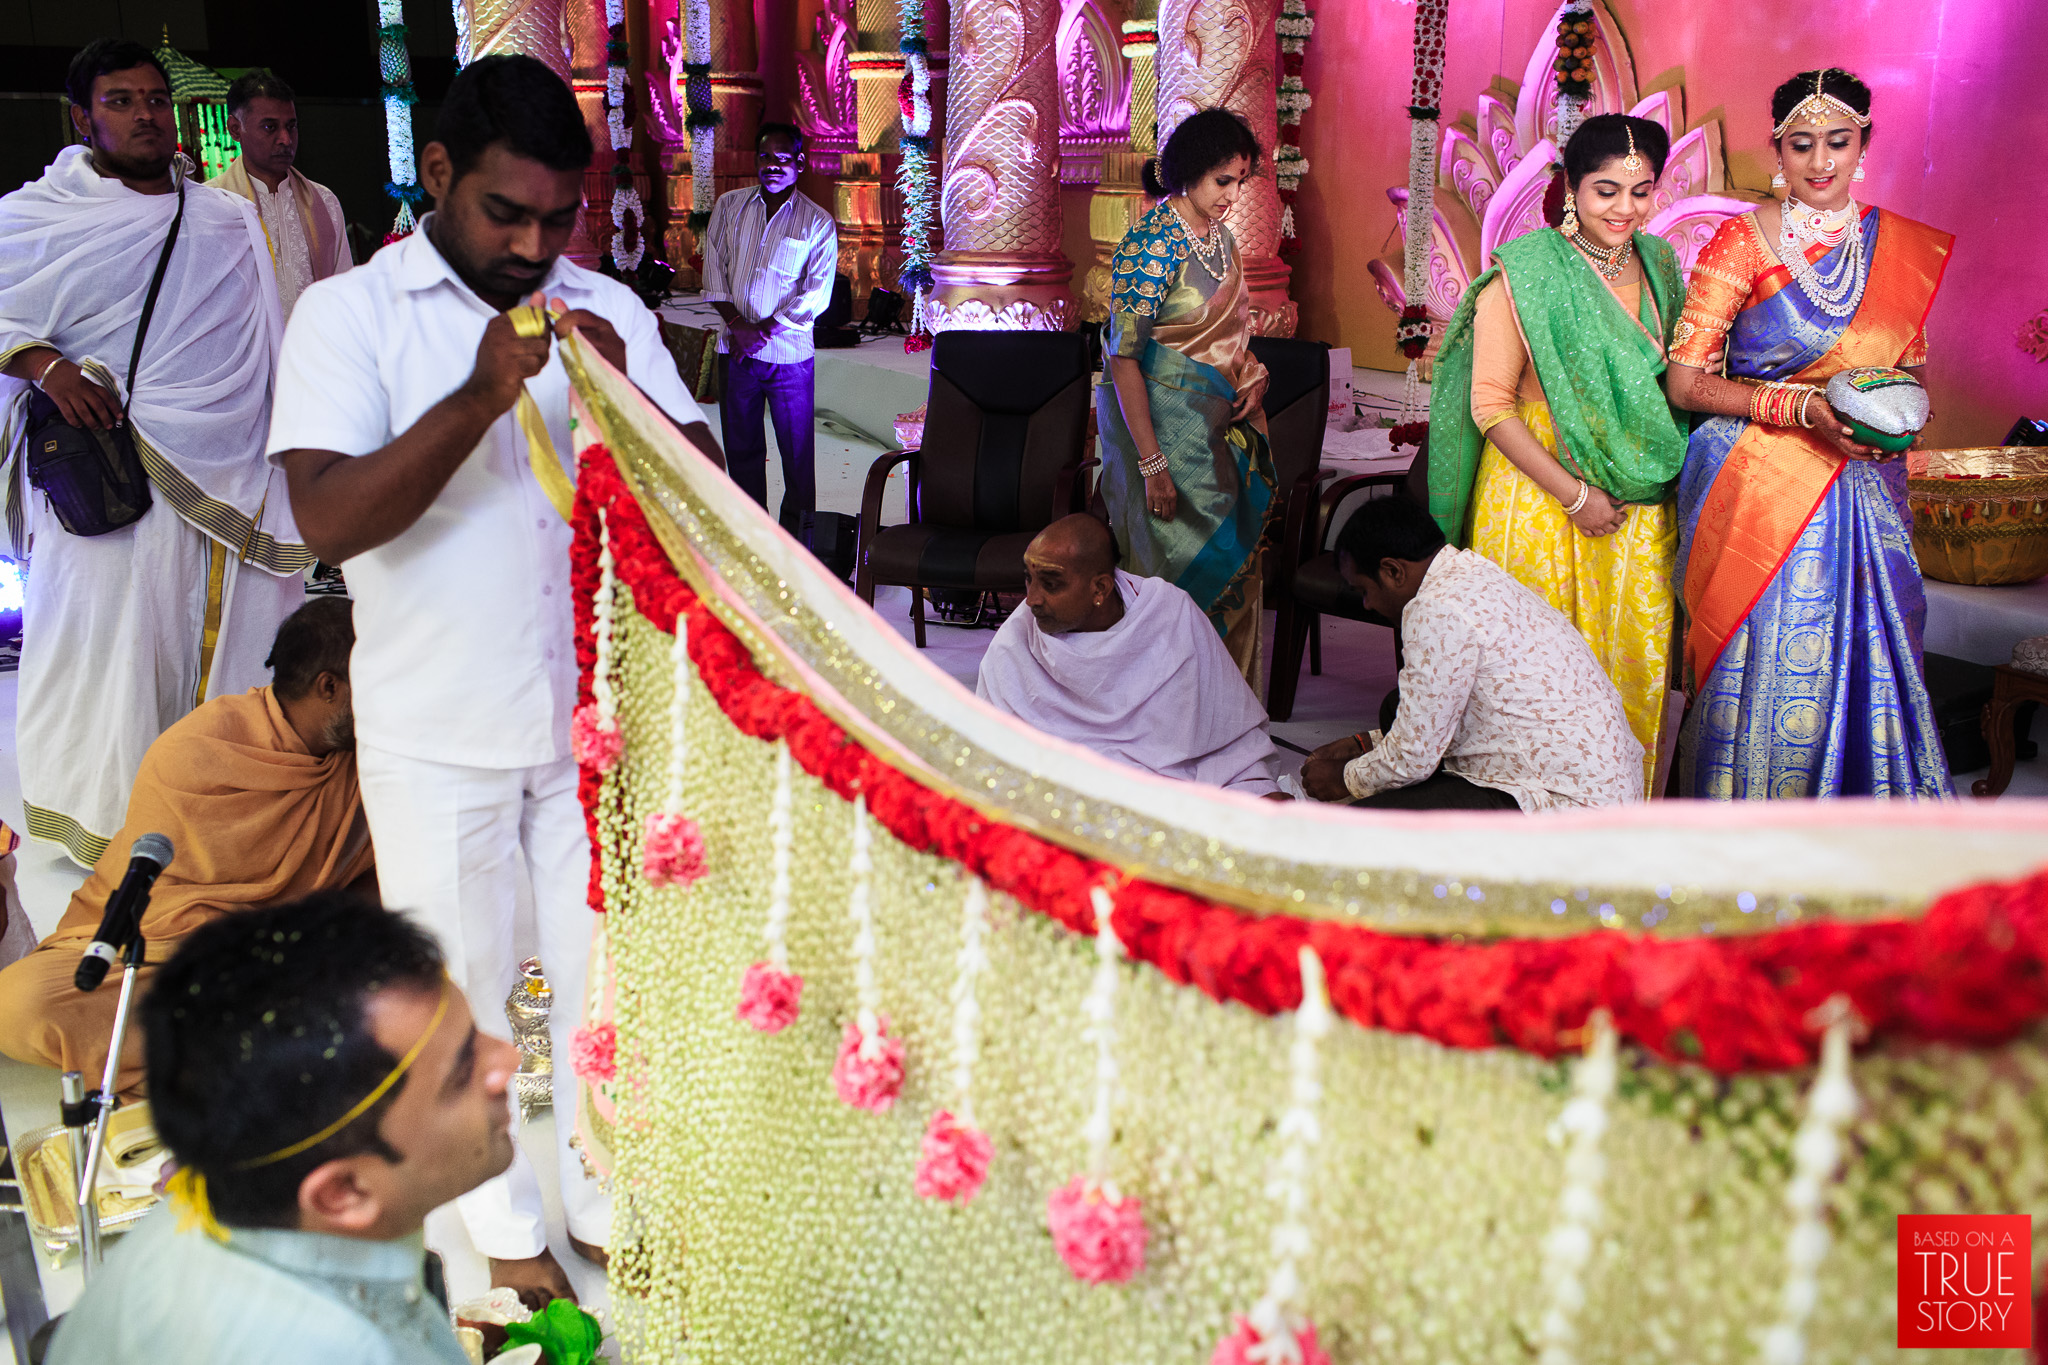 Candid-Wedding-Photography-Hyderabad-0043.jpg